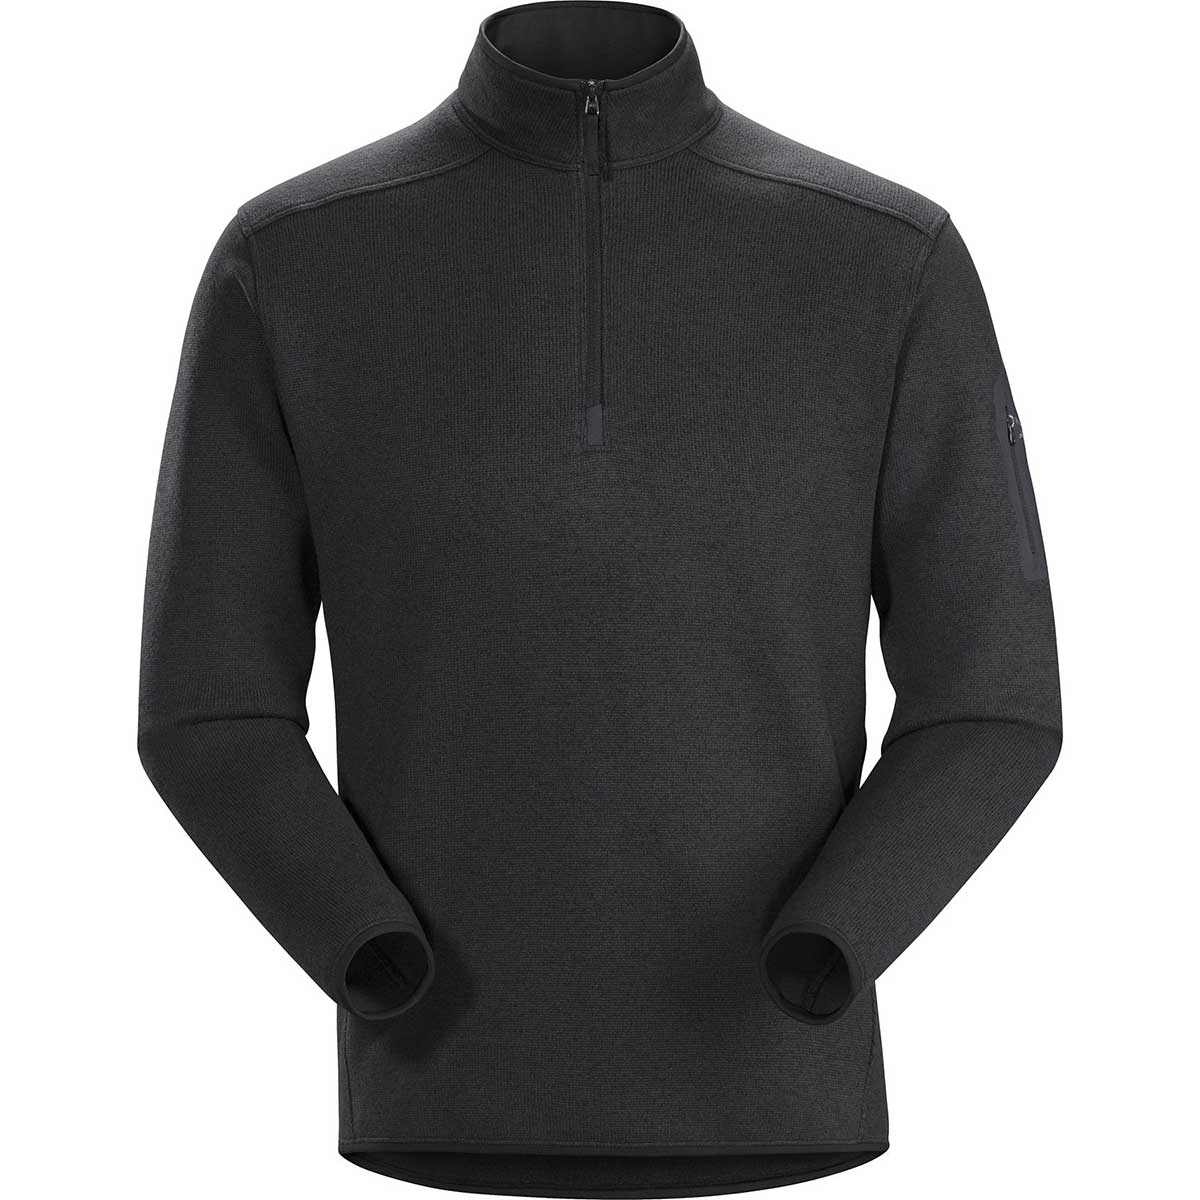 Arcteryx men's Covert 1/2 Zip Pullover in Black Heather front view